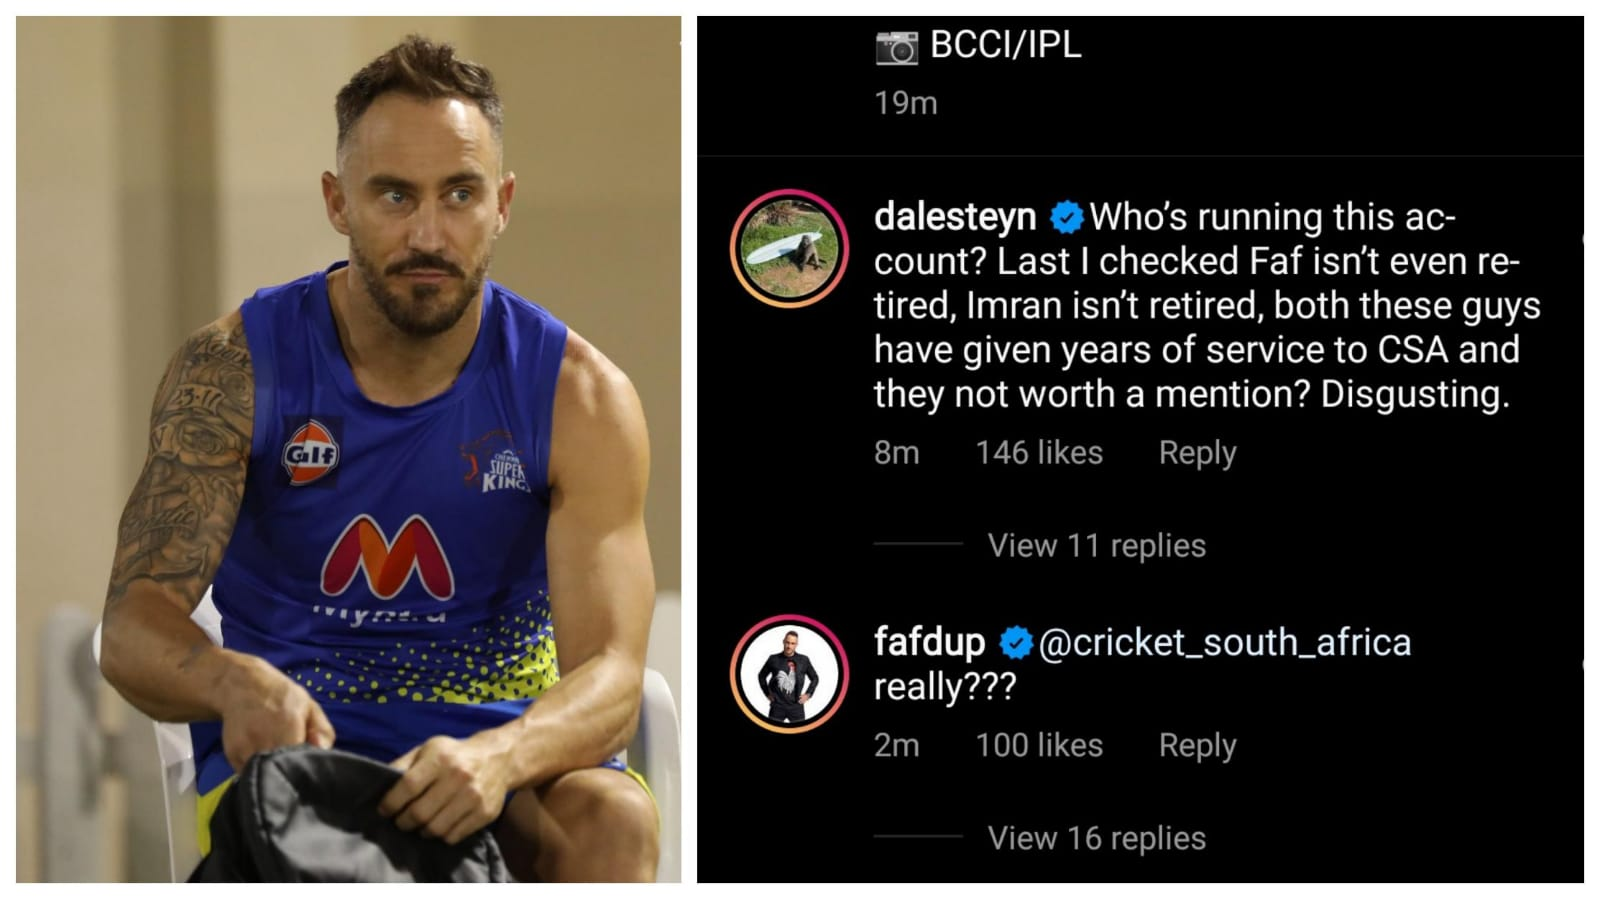 Faf & Steyn angry about Cricket South Africa's IPL post